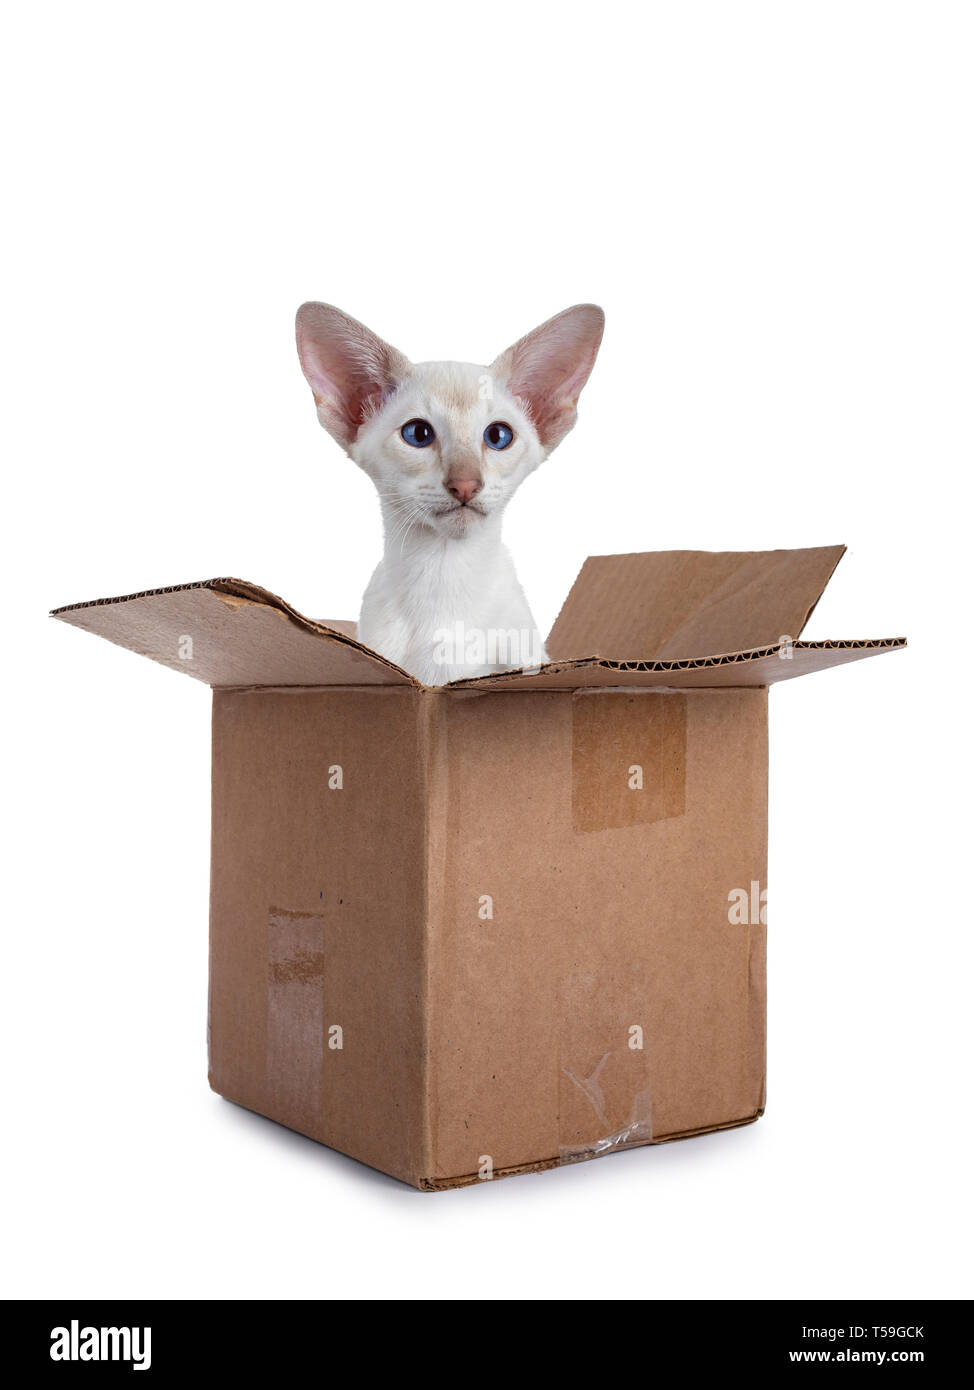 Cute Siamese kitten  sitting in brown paper box. Looking beside lens with mesmerizing blue eyes. Isolated on a white background. - Stock Image